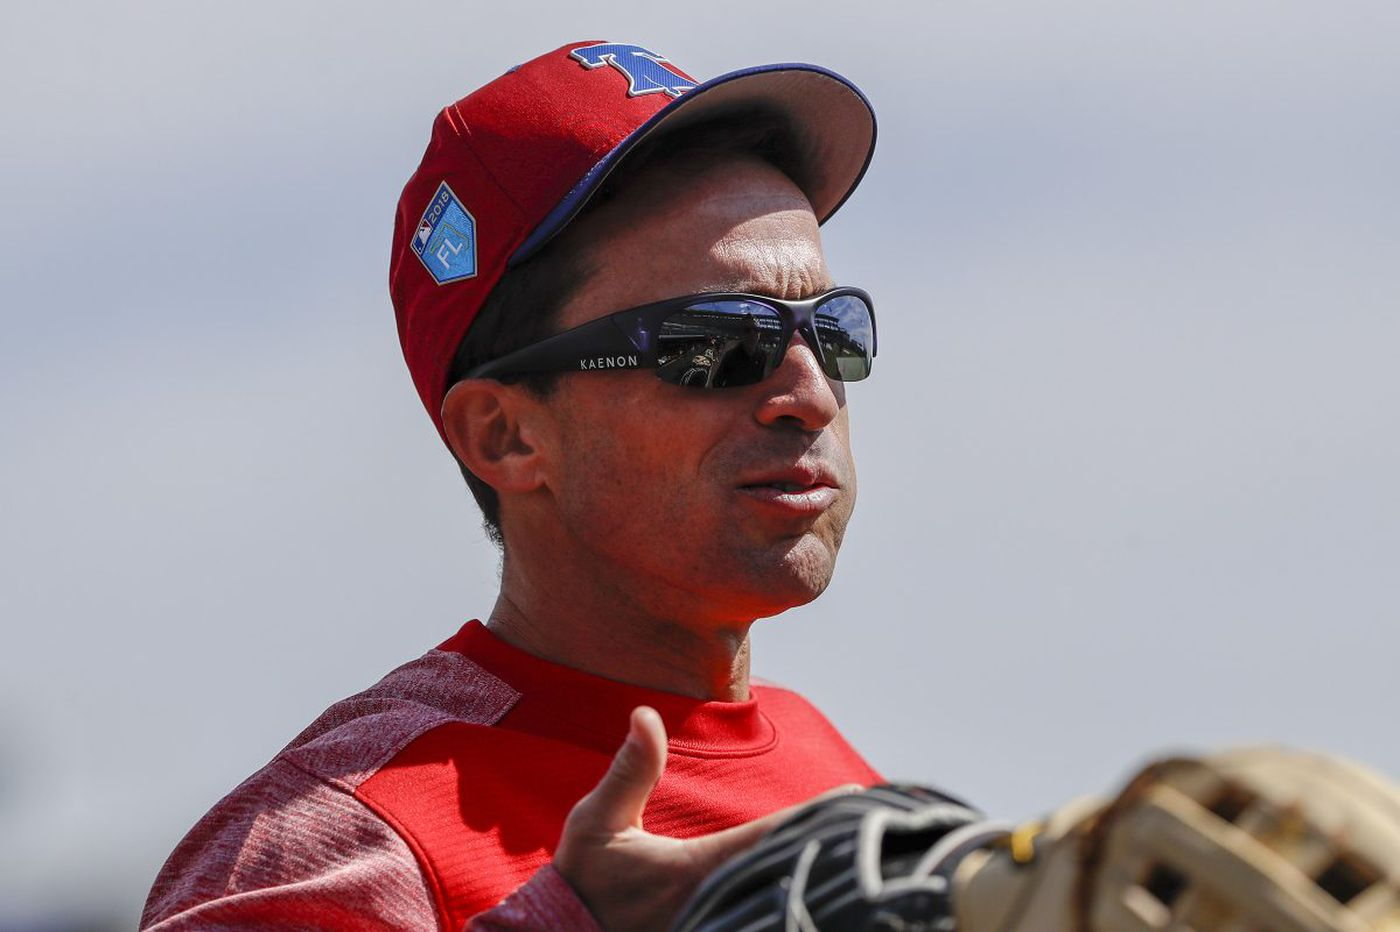 Phillies promote Sam Fuld to general manager's role under Dave Dombrowski